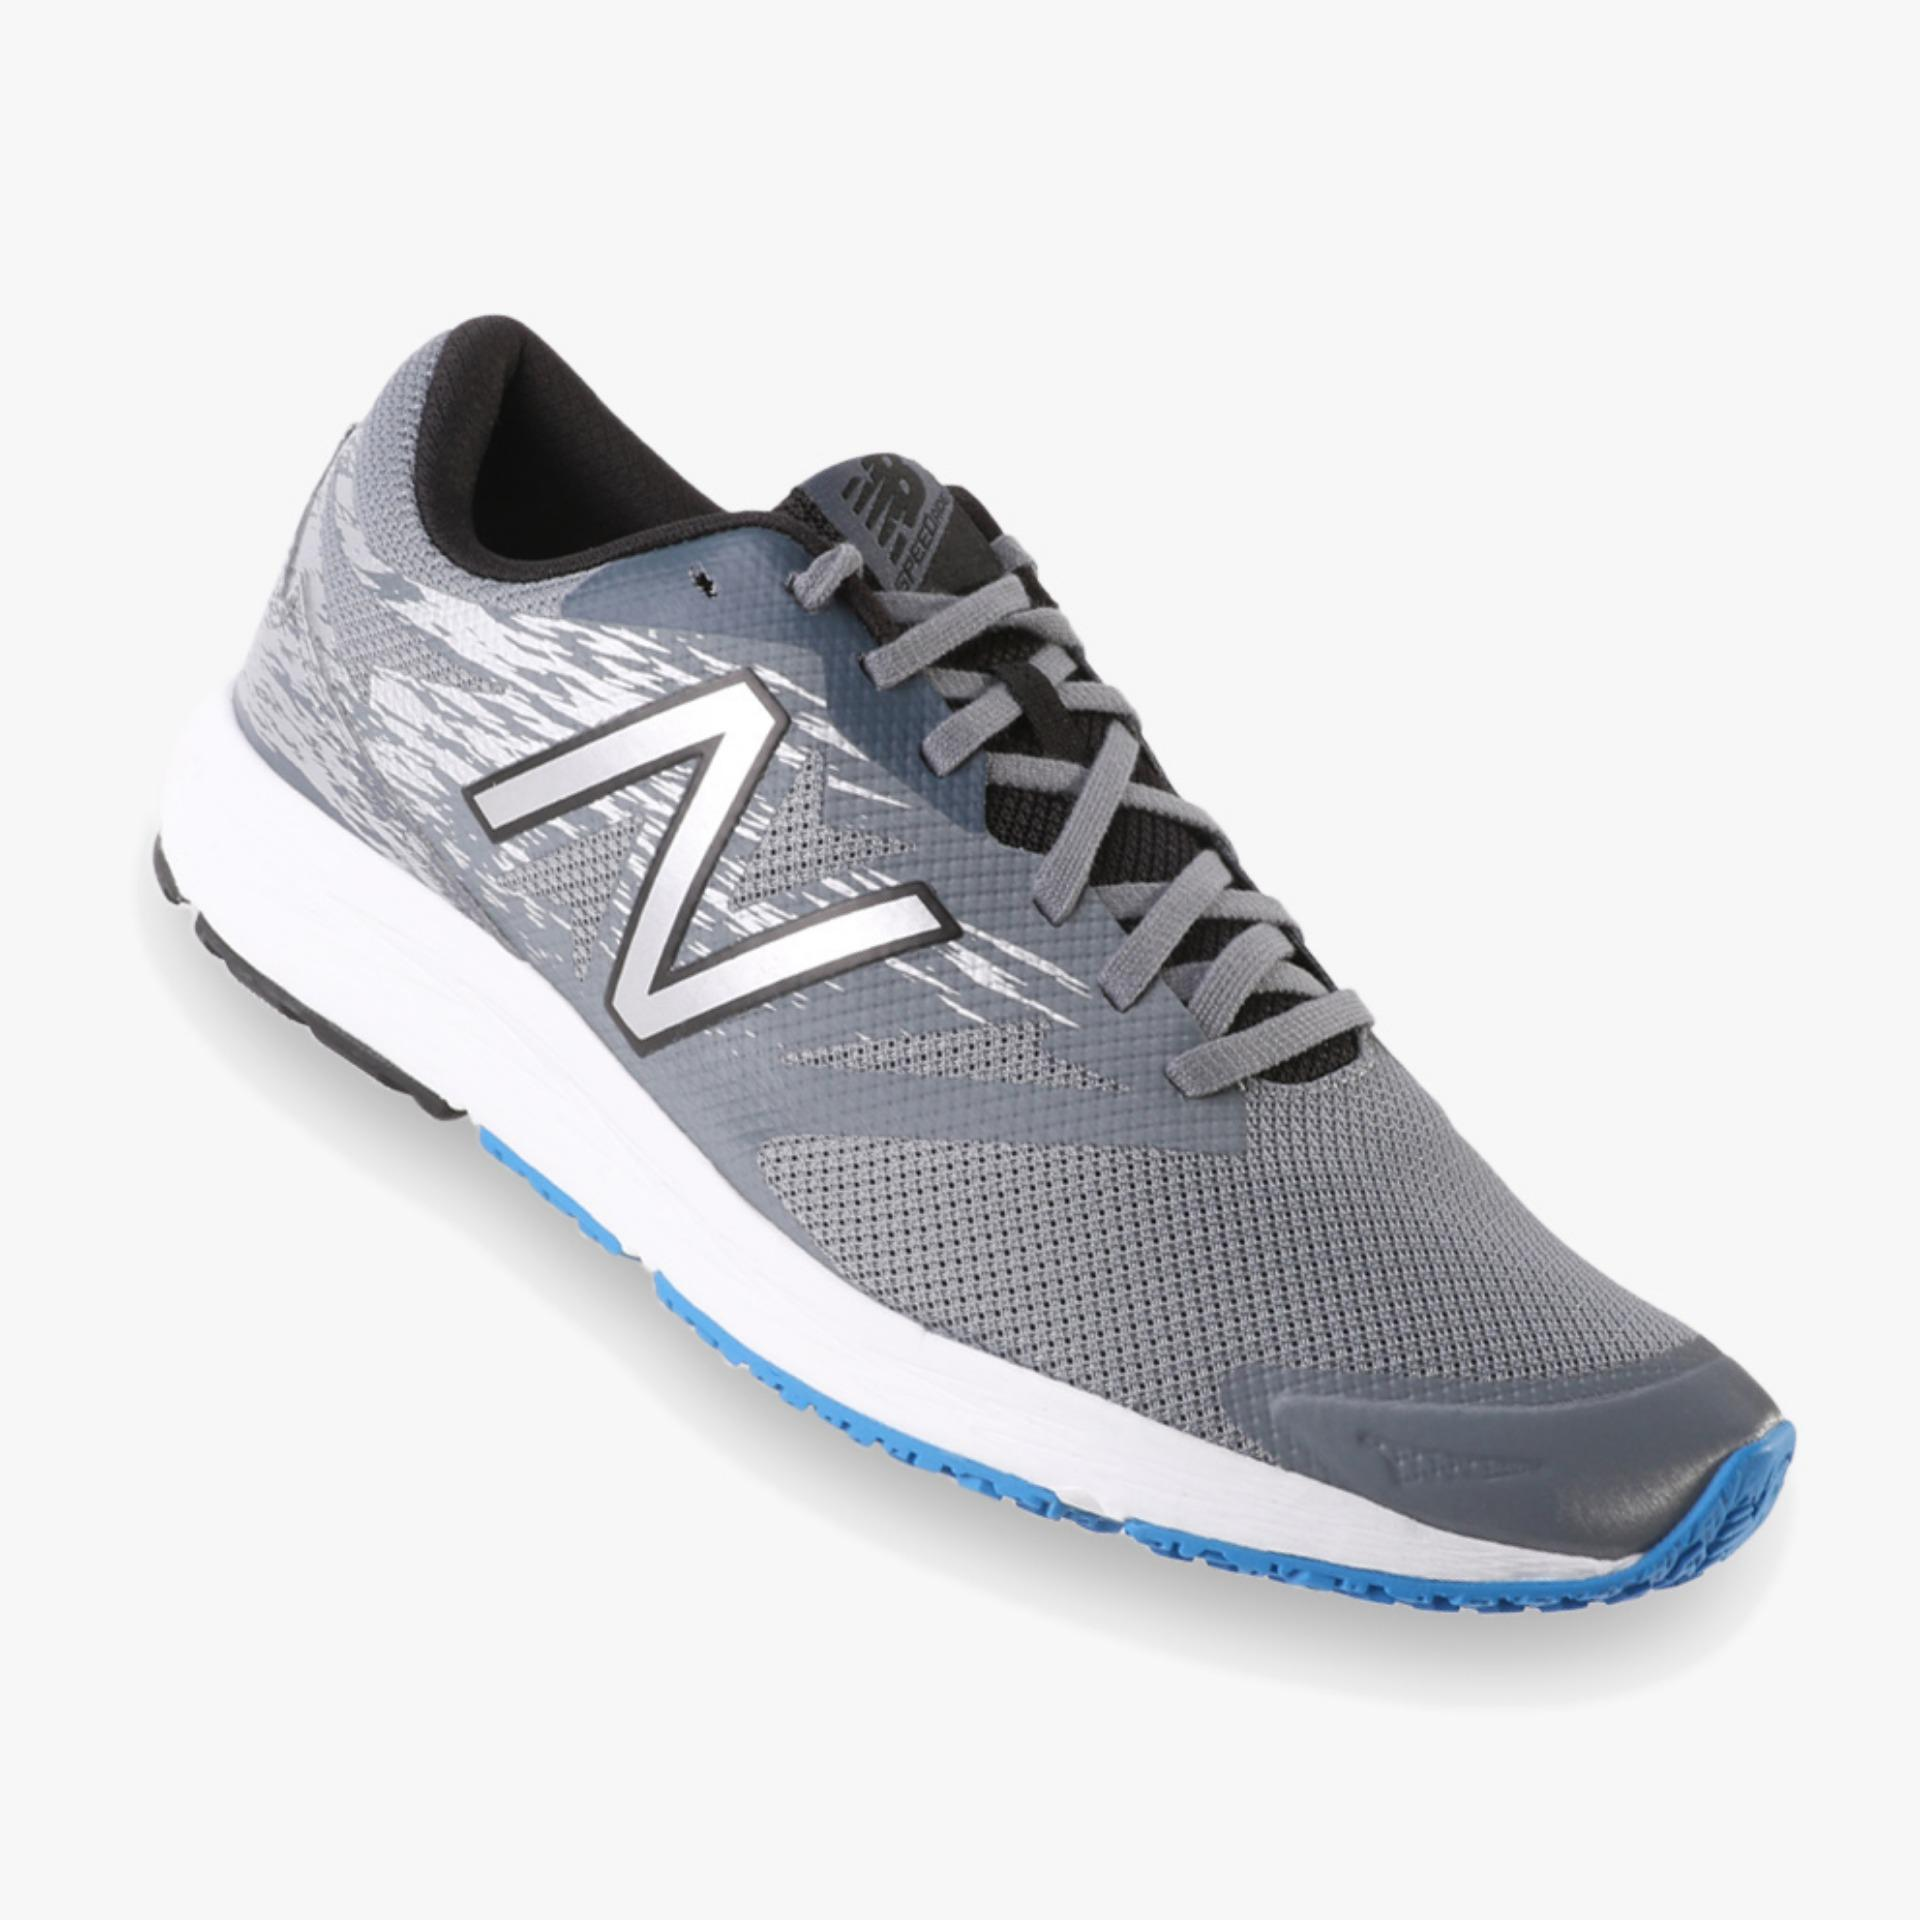 Dimana Beli New Balance Speed Ride Flash Men S Running Shoes Abu Abu New Balance